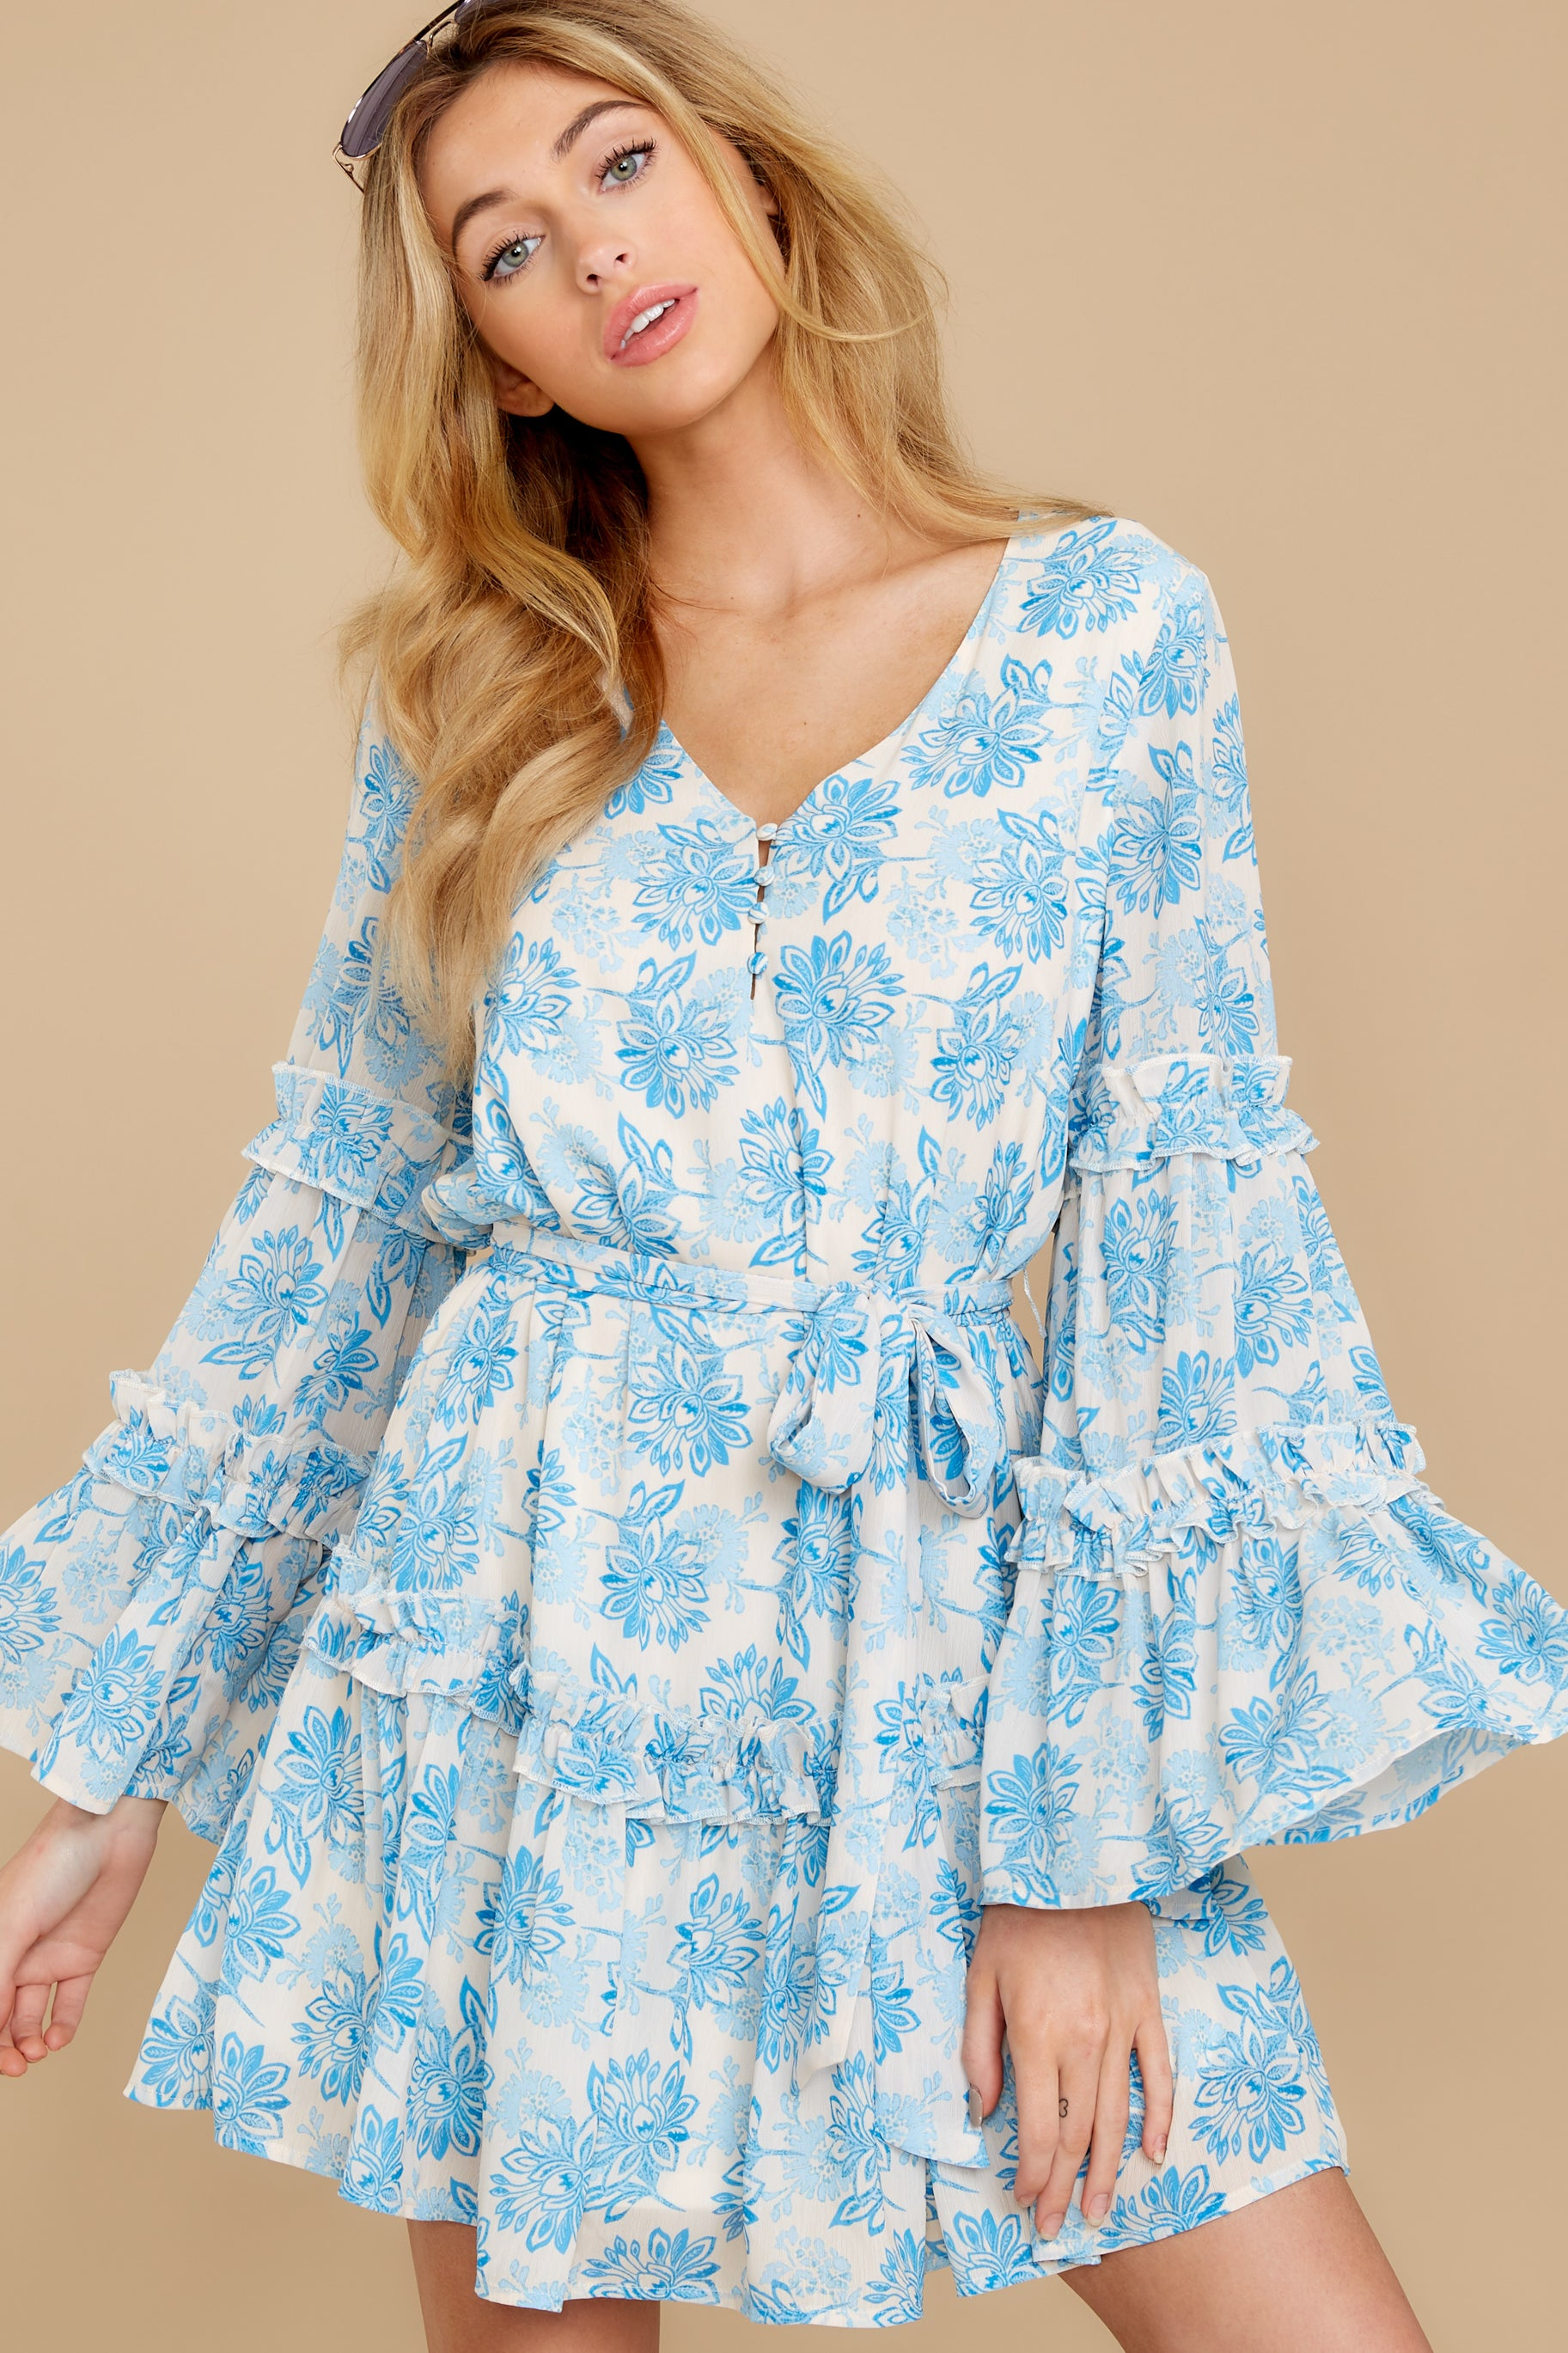 6 Out Of The Light Blue Print Dress at reddress.com